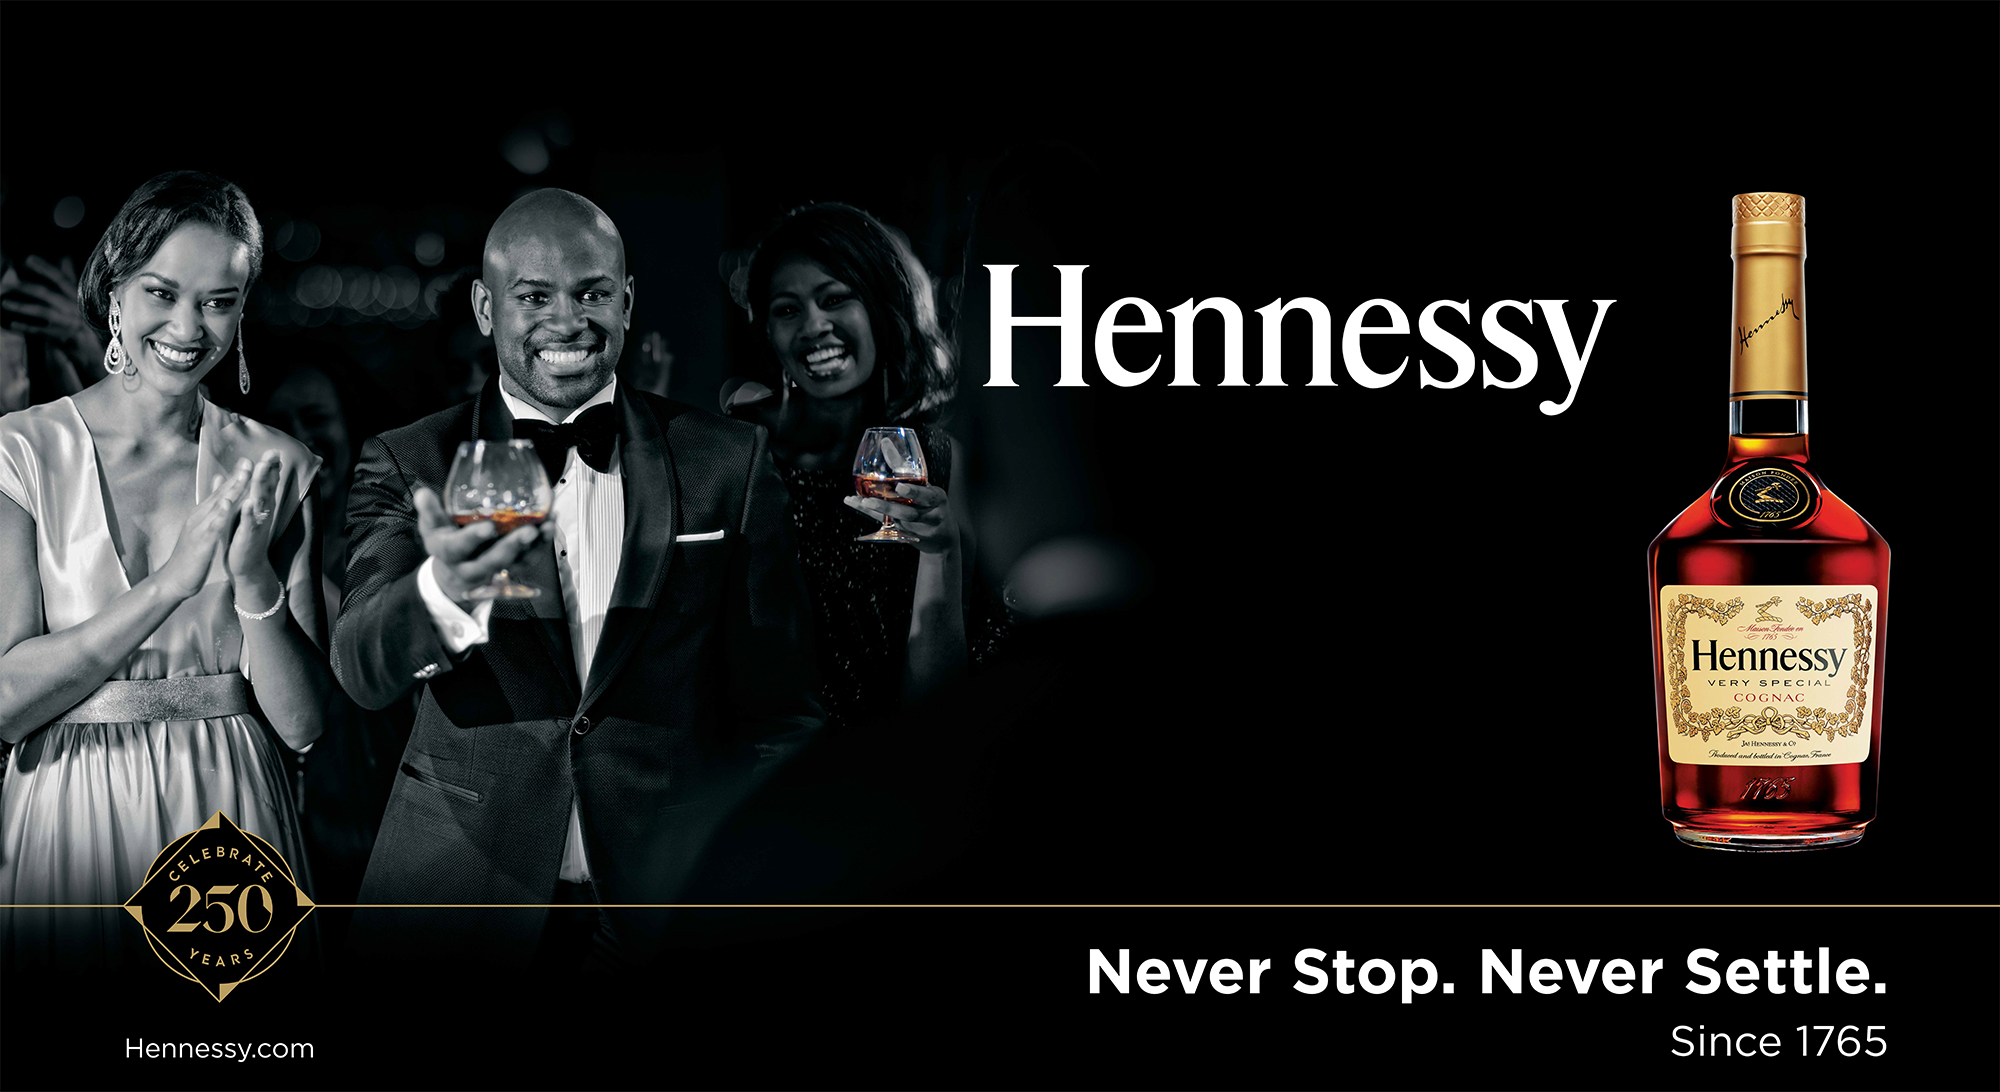 HENNESSY ' Never Stop. Never Settle. ' PRINT/OUTDOOR